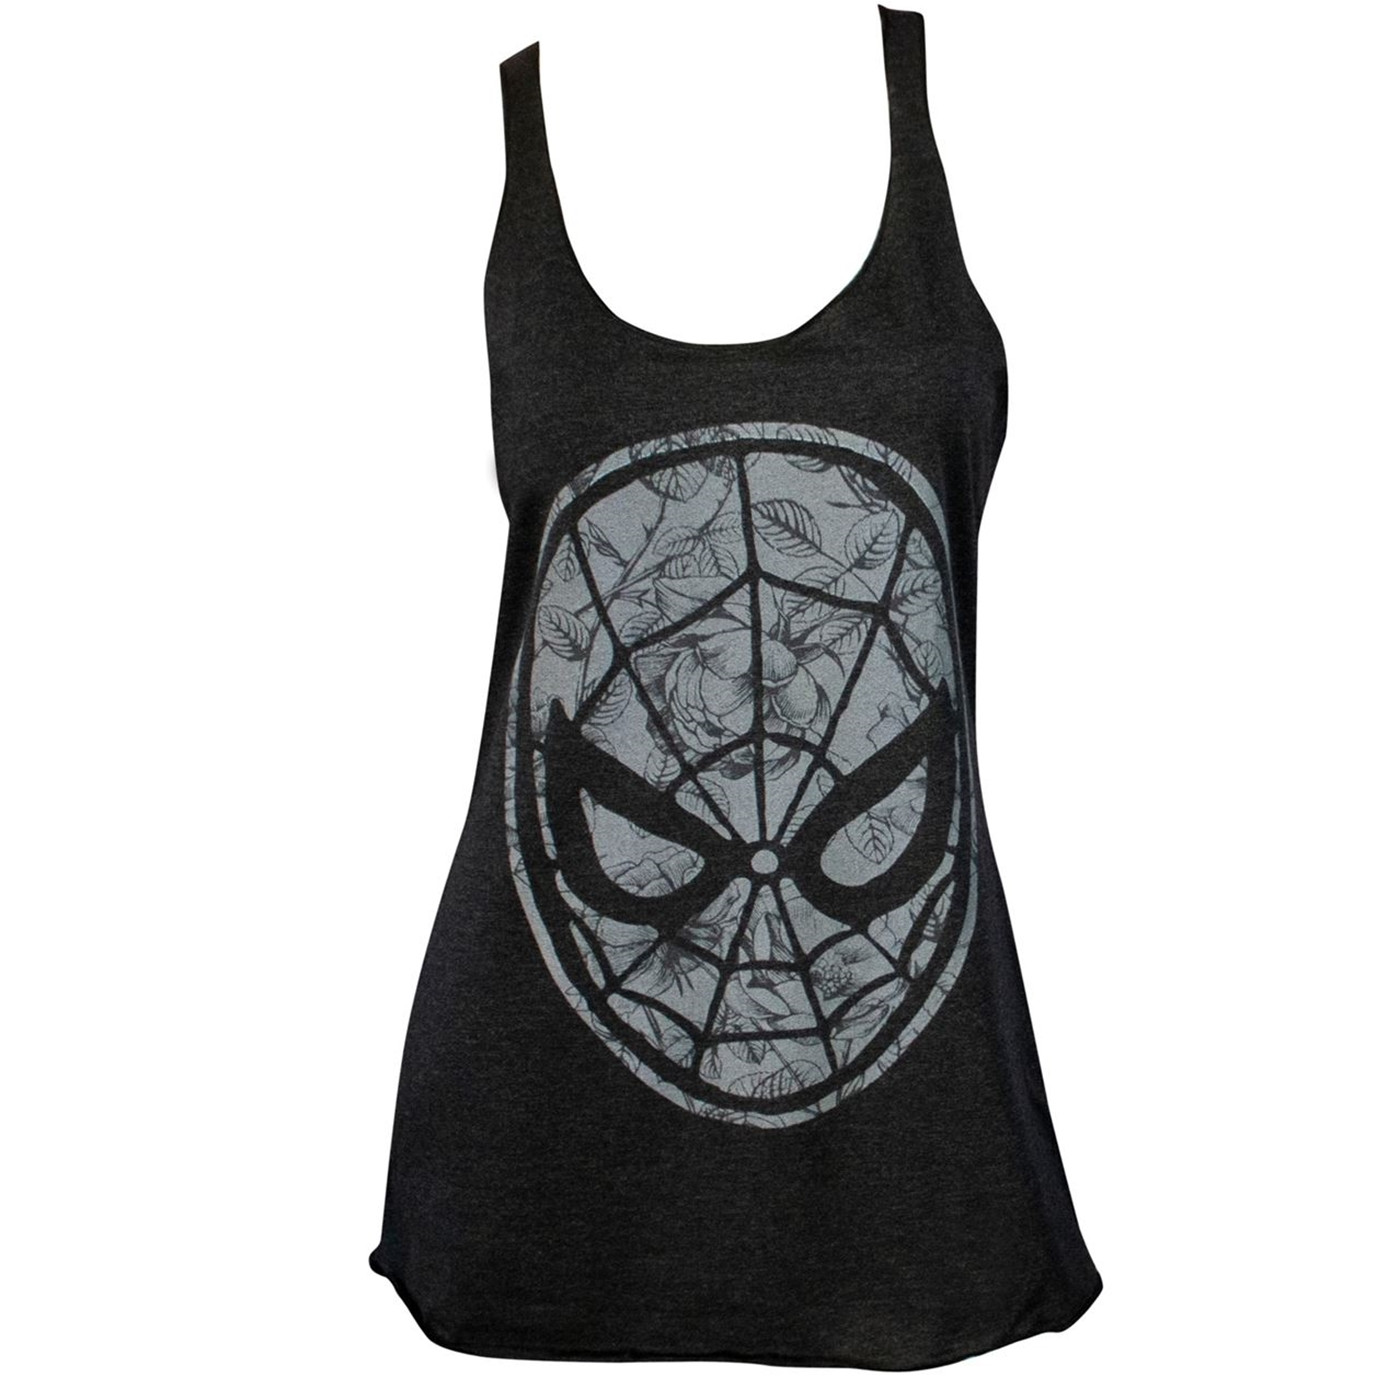 Spider-Man Floral Face Logo Women's Tank Top